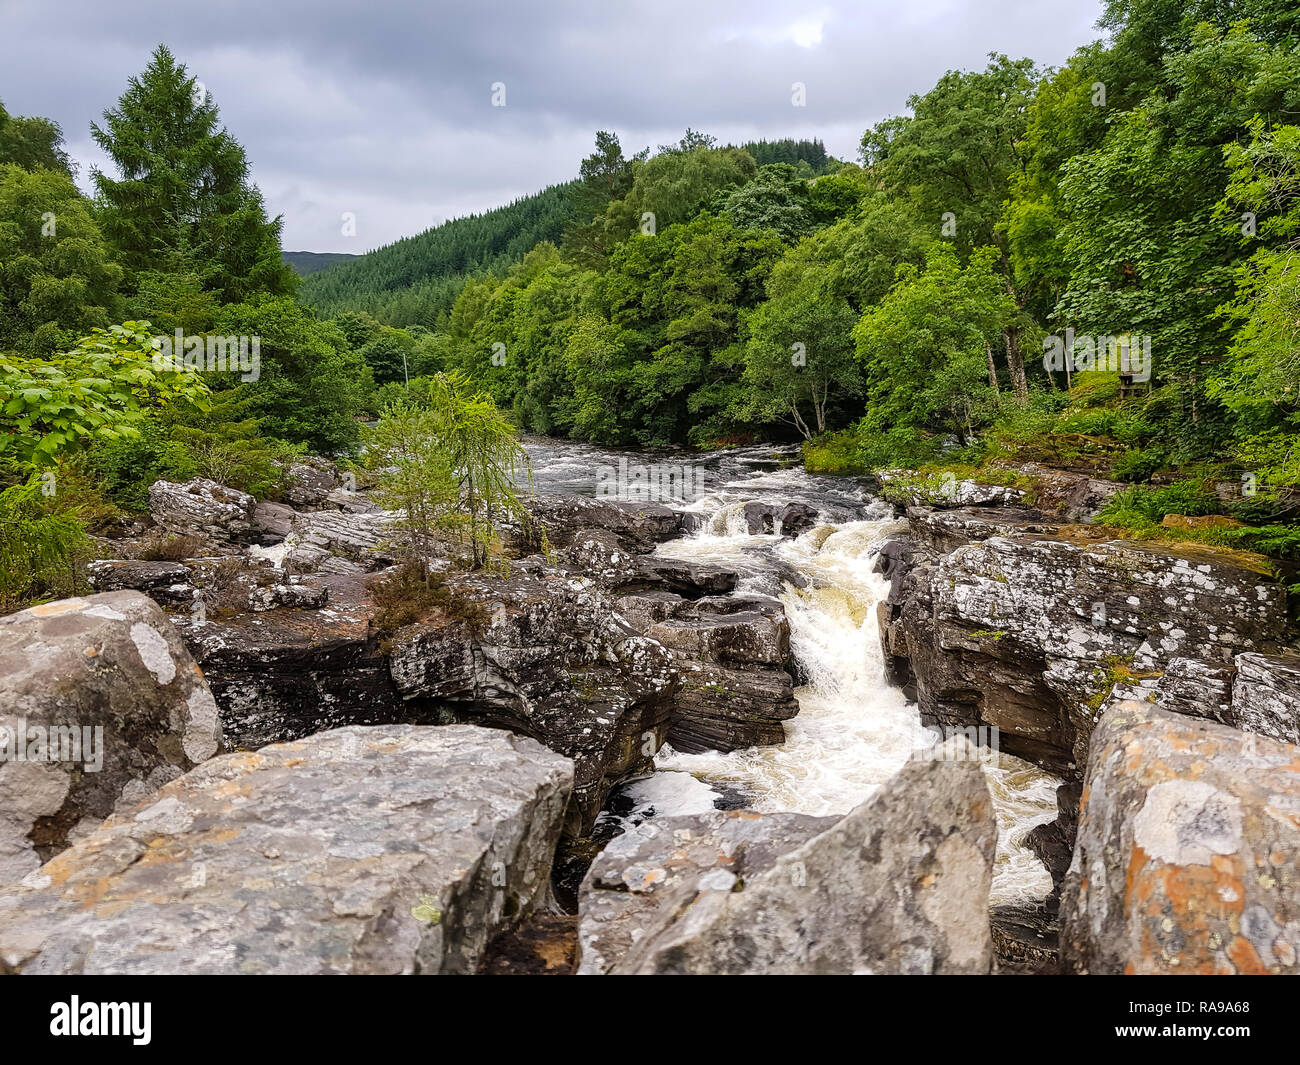 The stunning landscape surrounding the Great Glen Way in Scotland, United Kingdom. - Stock Image